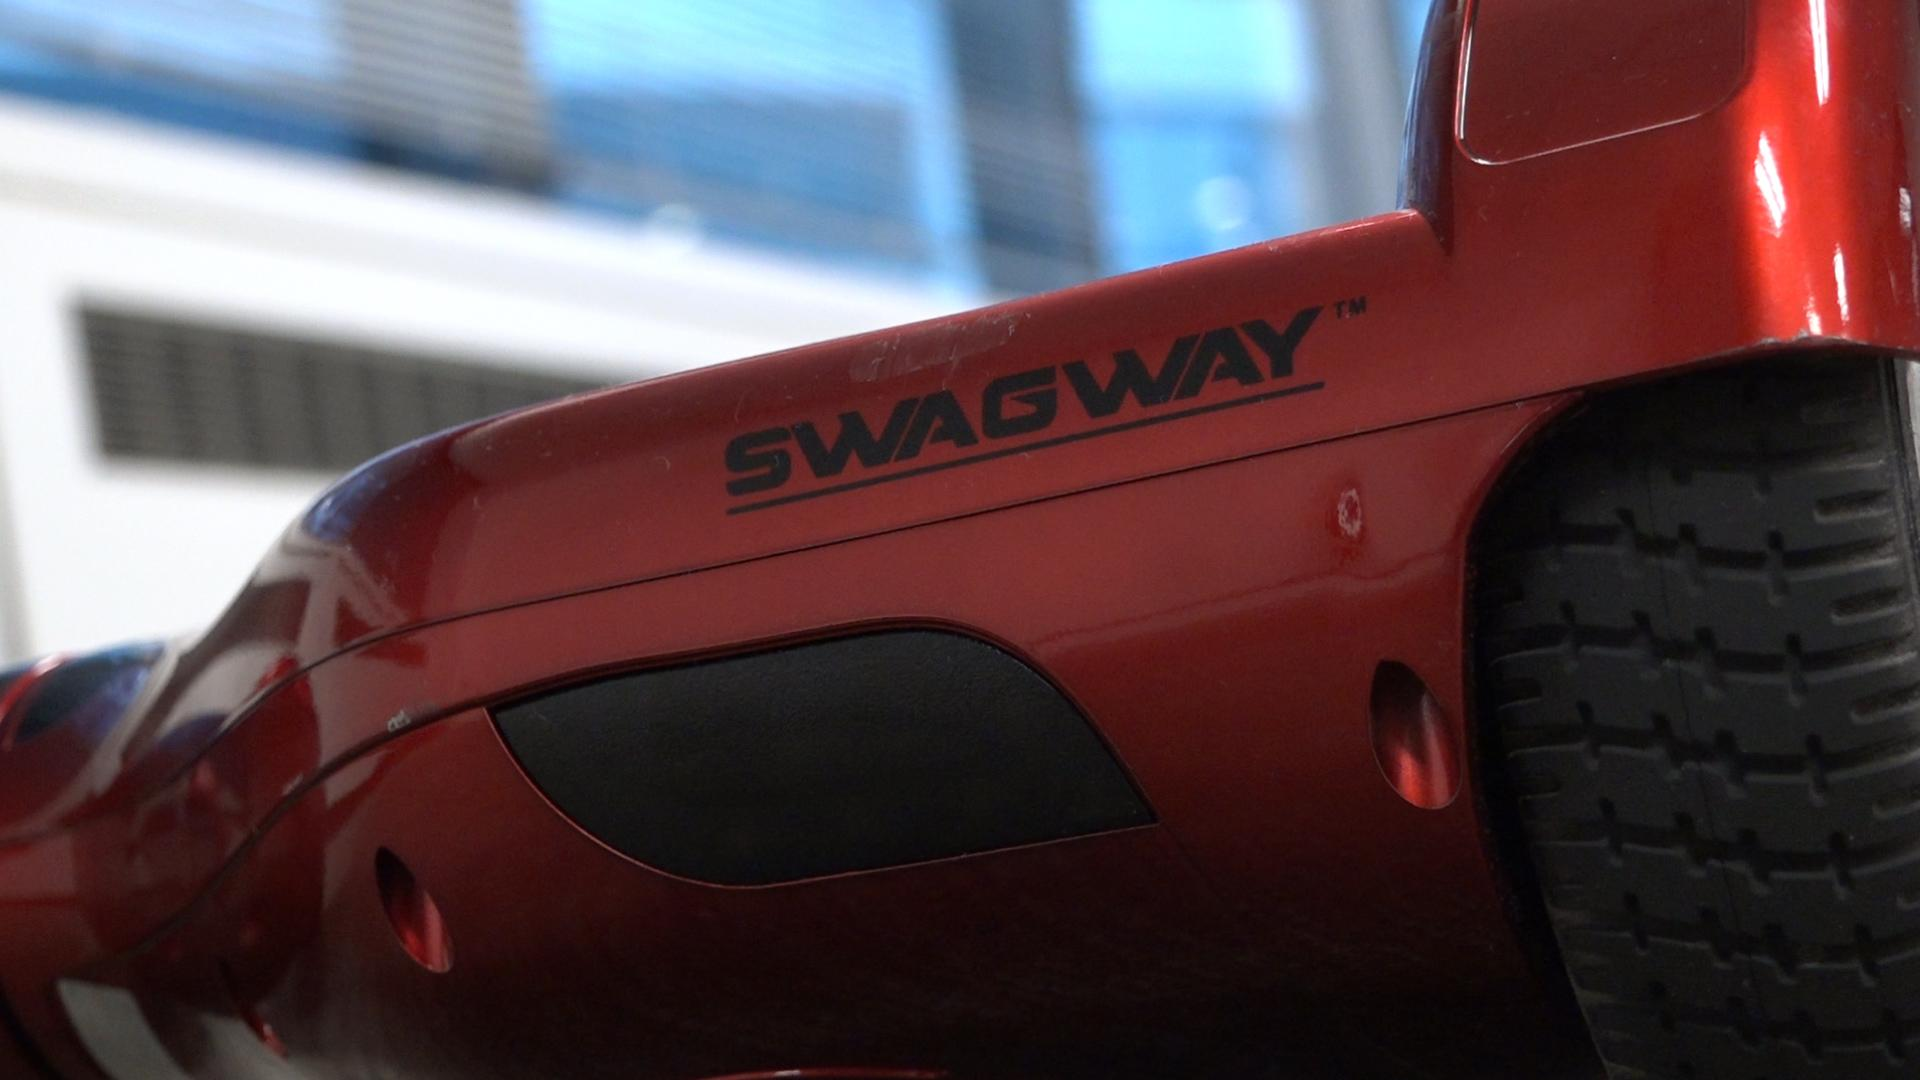 Swaqgway X1 hoverboard 1